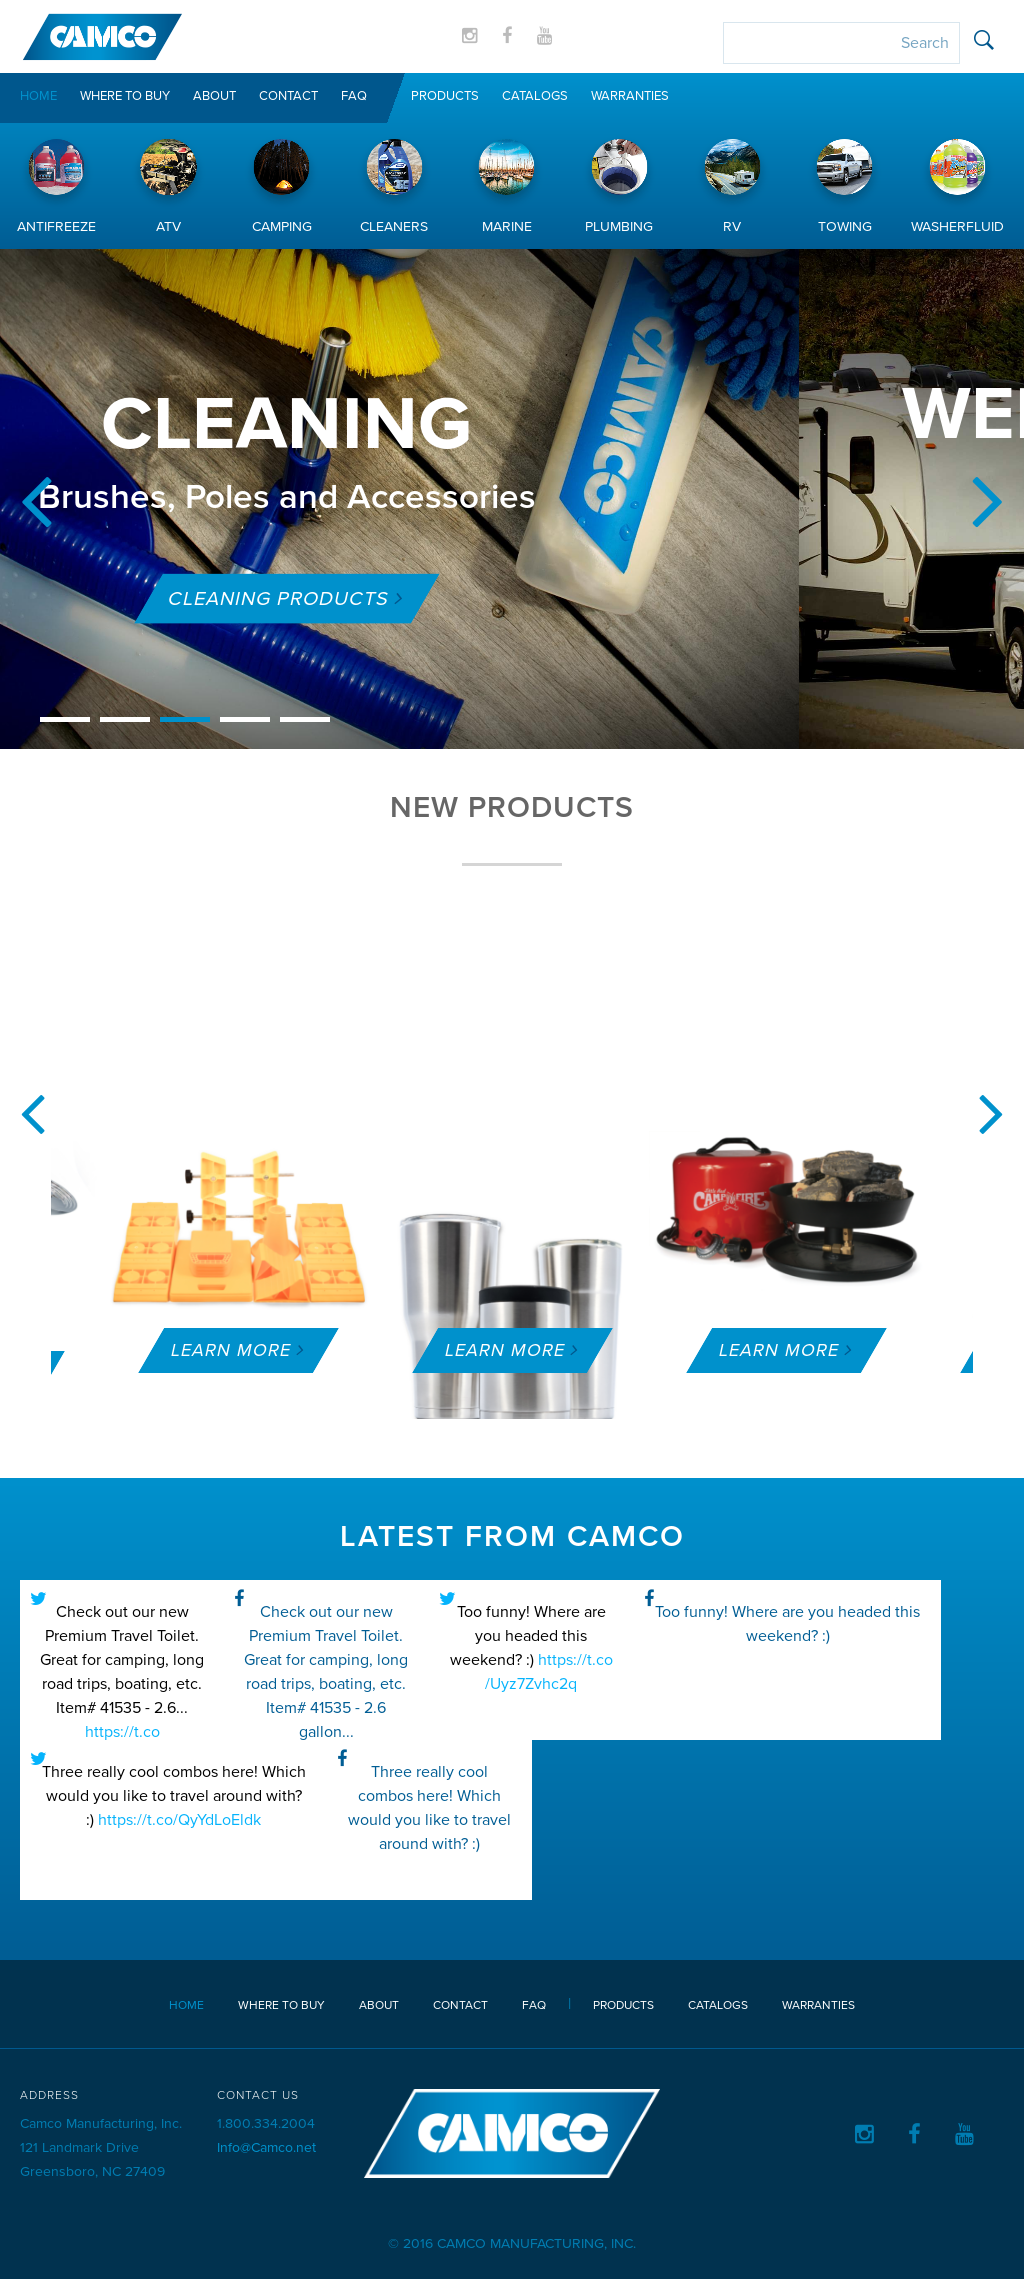 Camco S Latest News Blogs Press Releases Videos